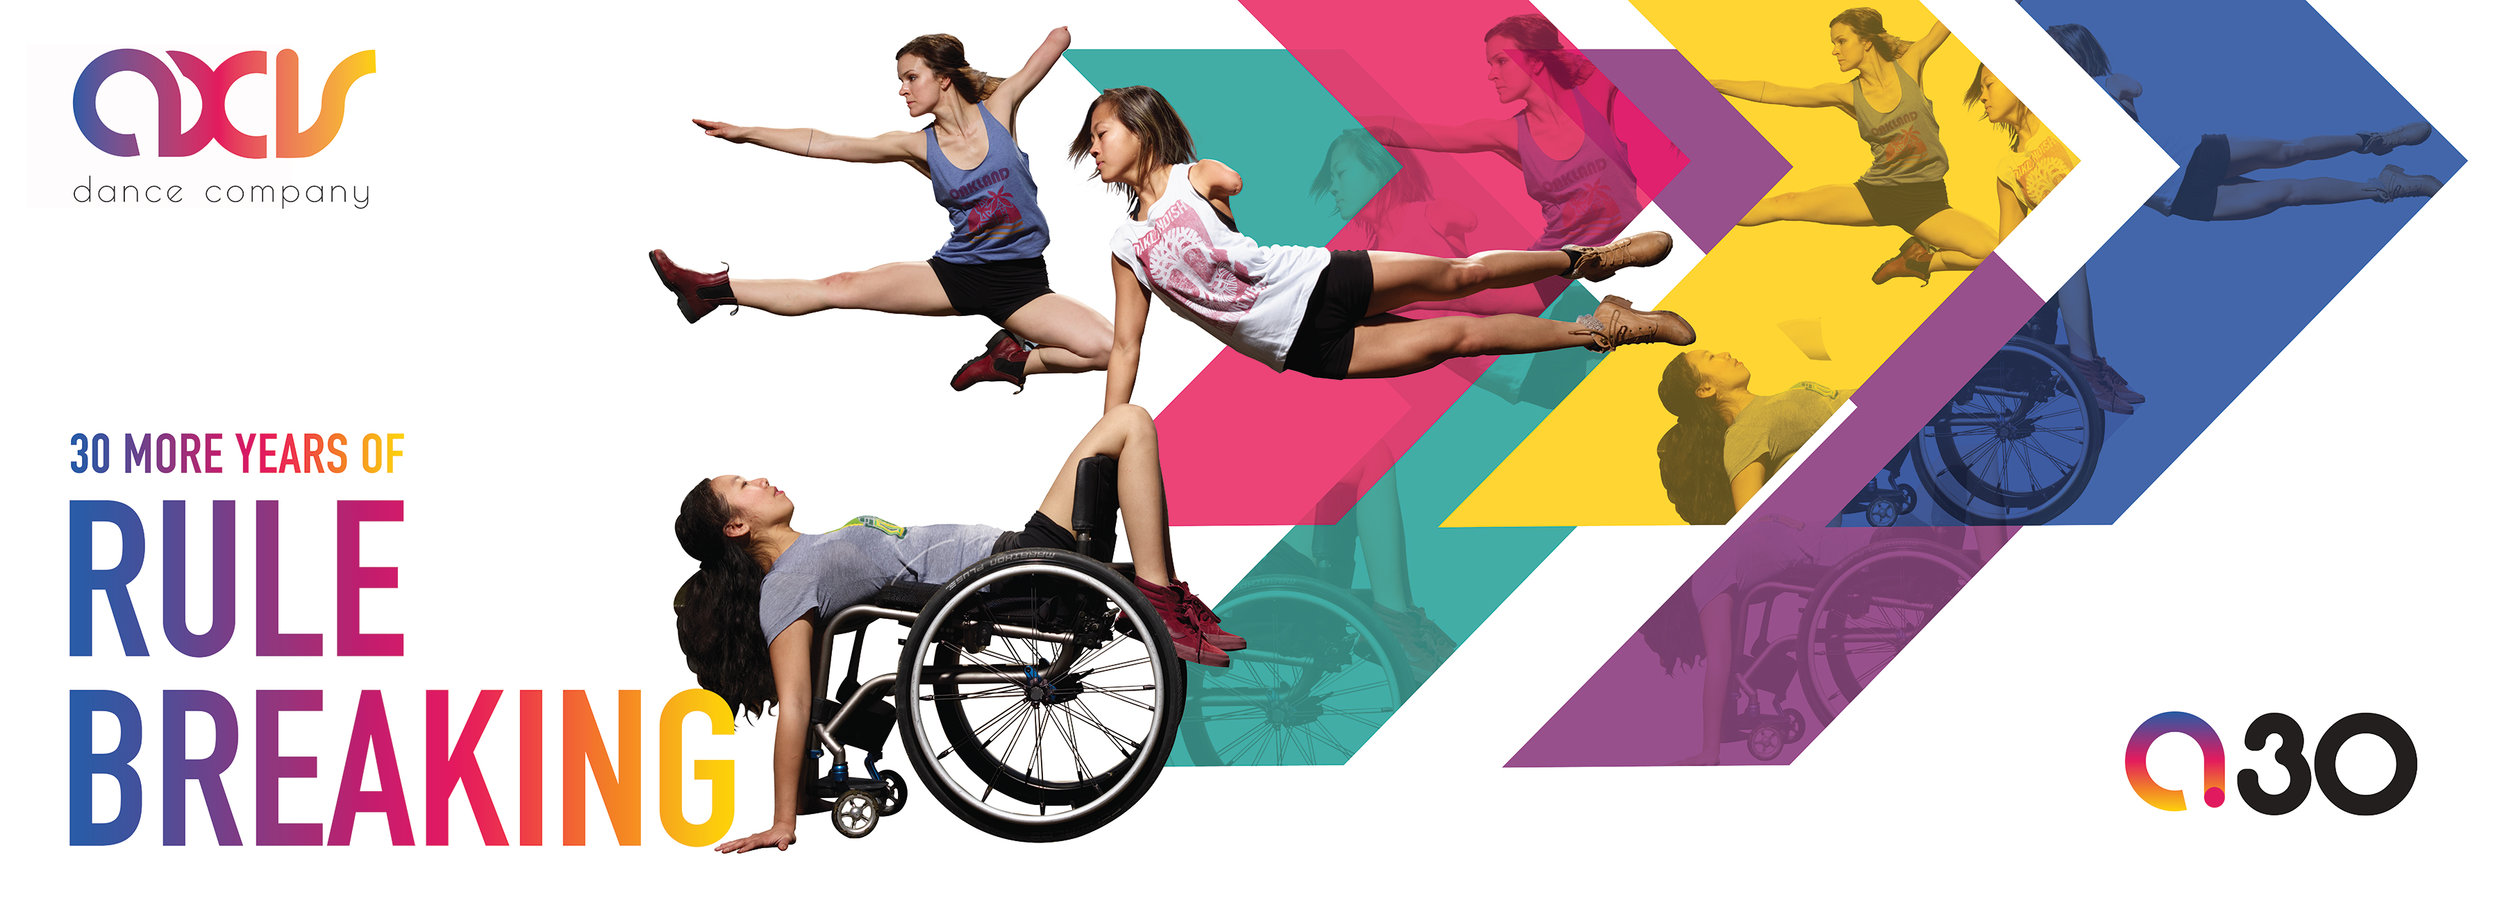 AXIS Dance 30th Anniversary Grapic showing one dancer in a wheelchair and two dancers in mid air.